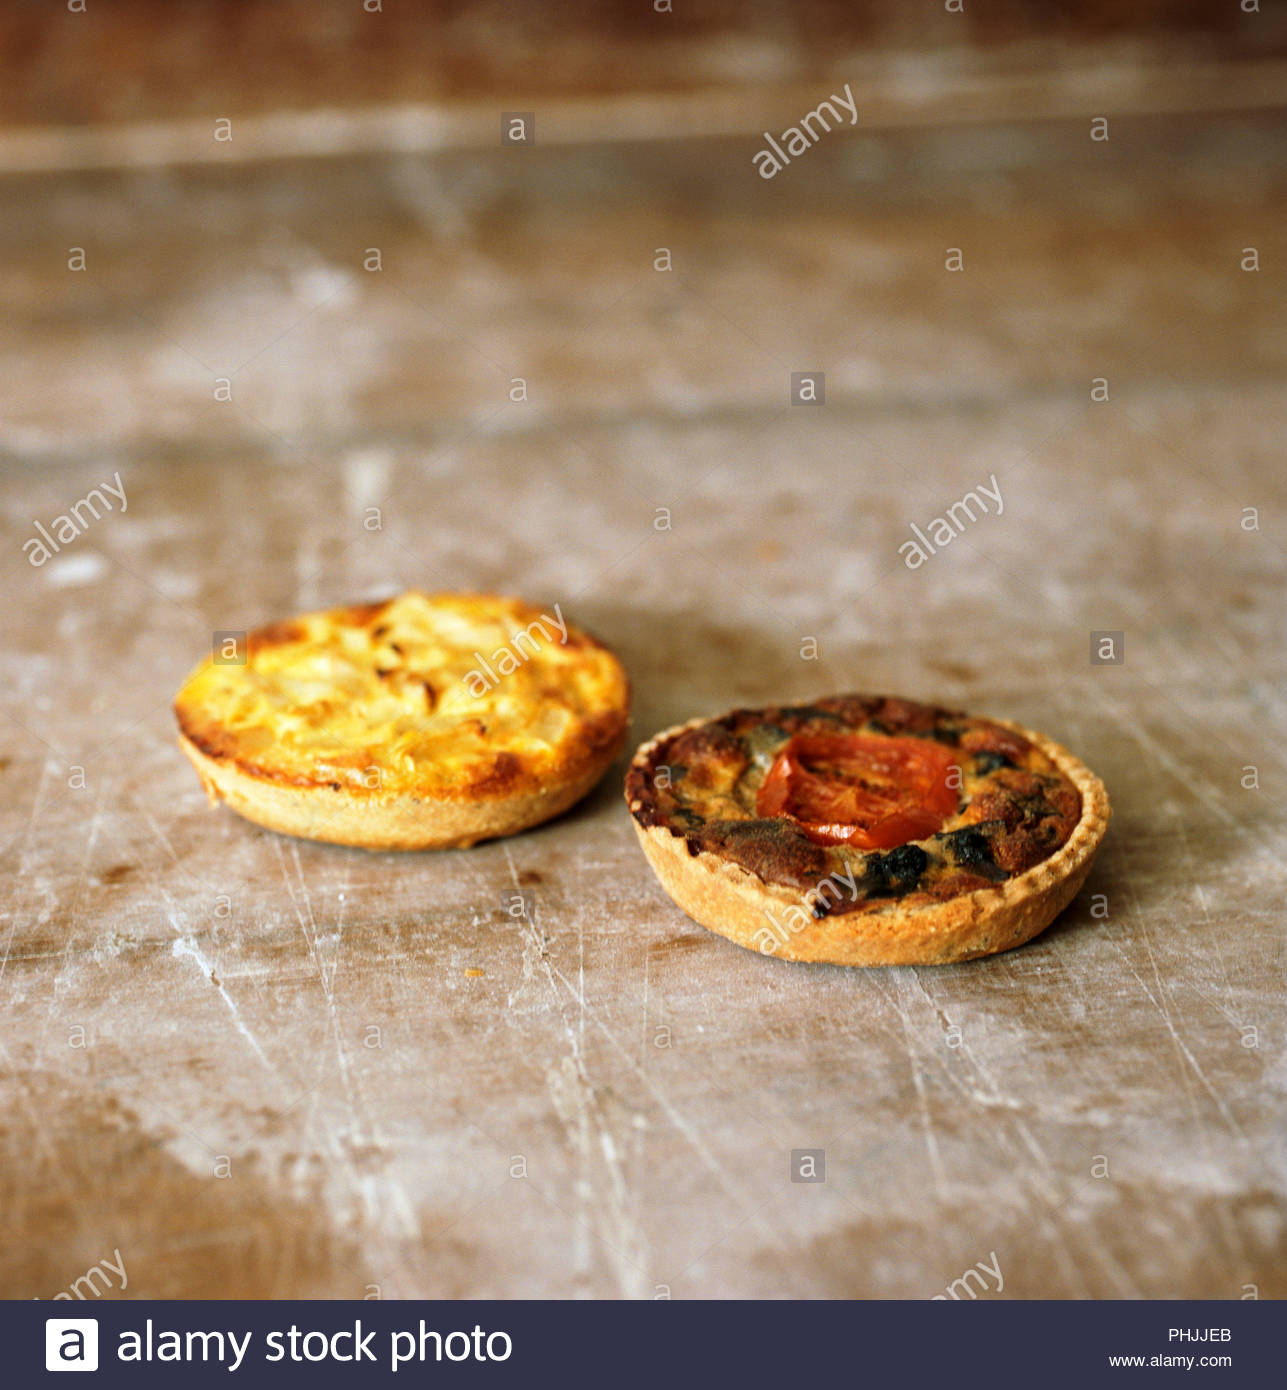 Pastries on wooden table - Stock Image